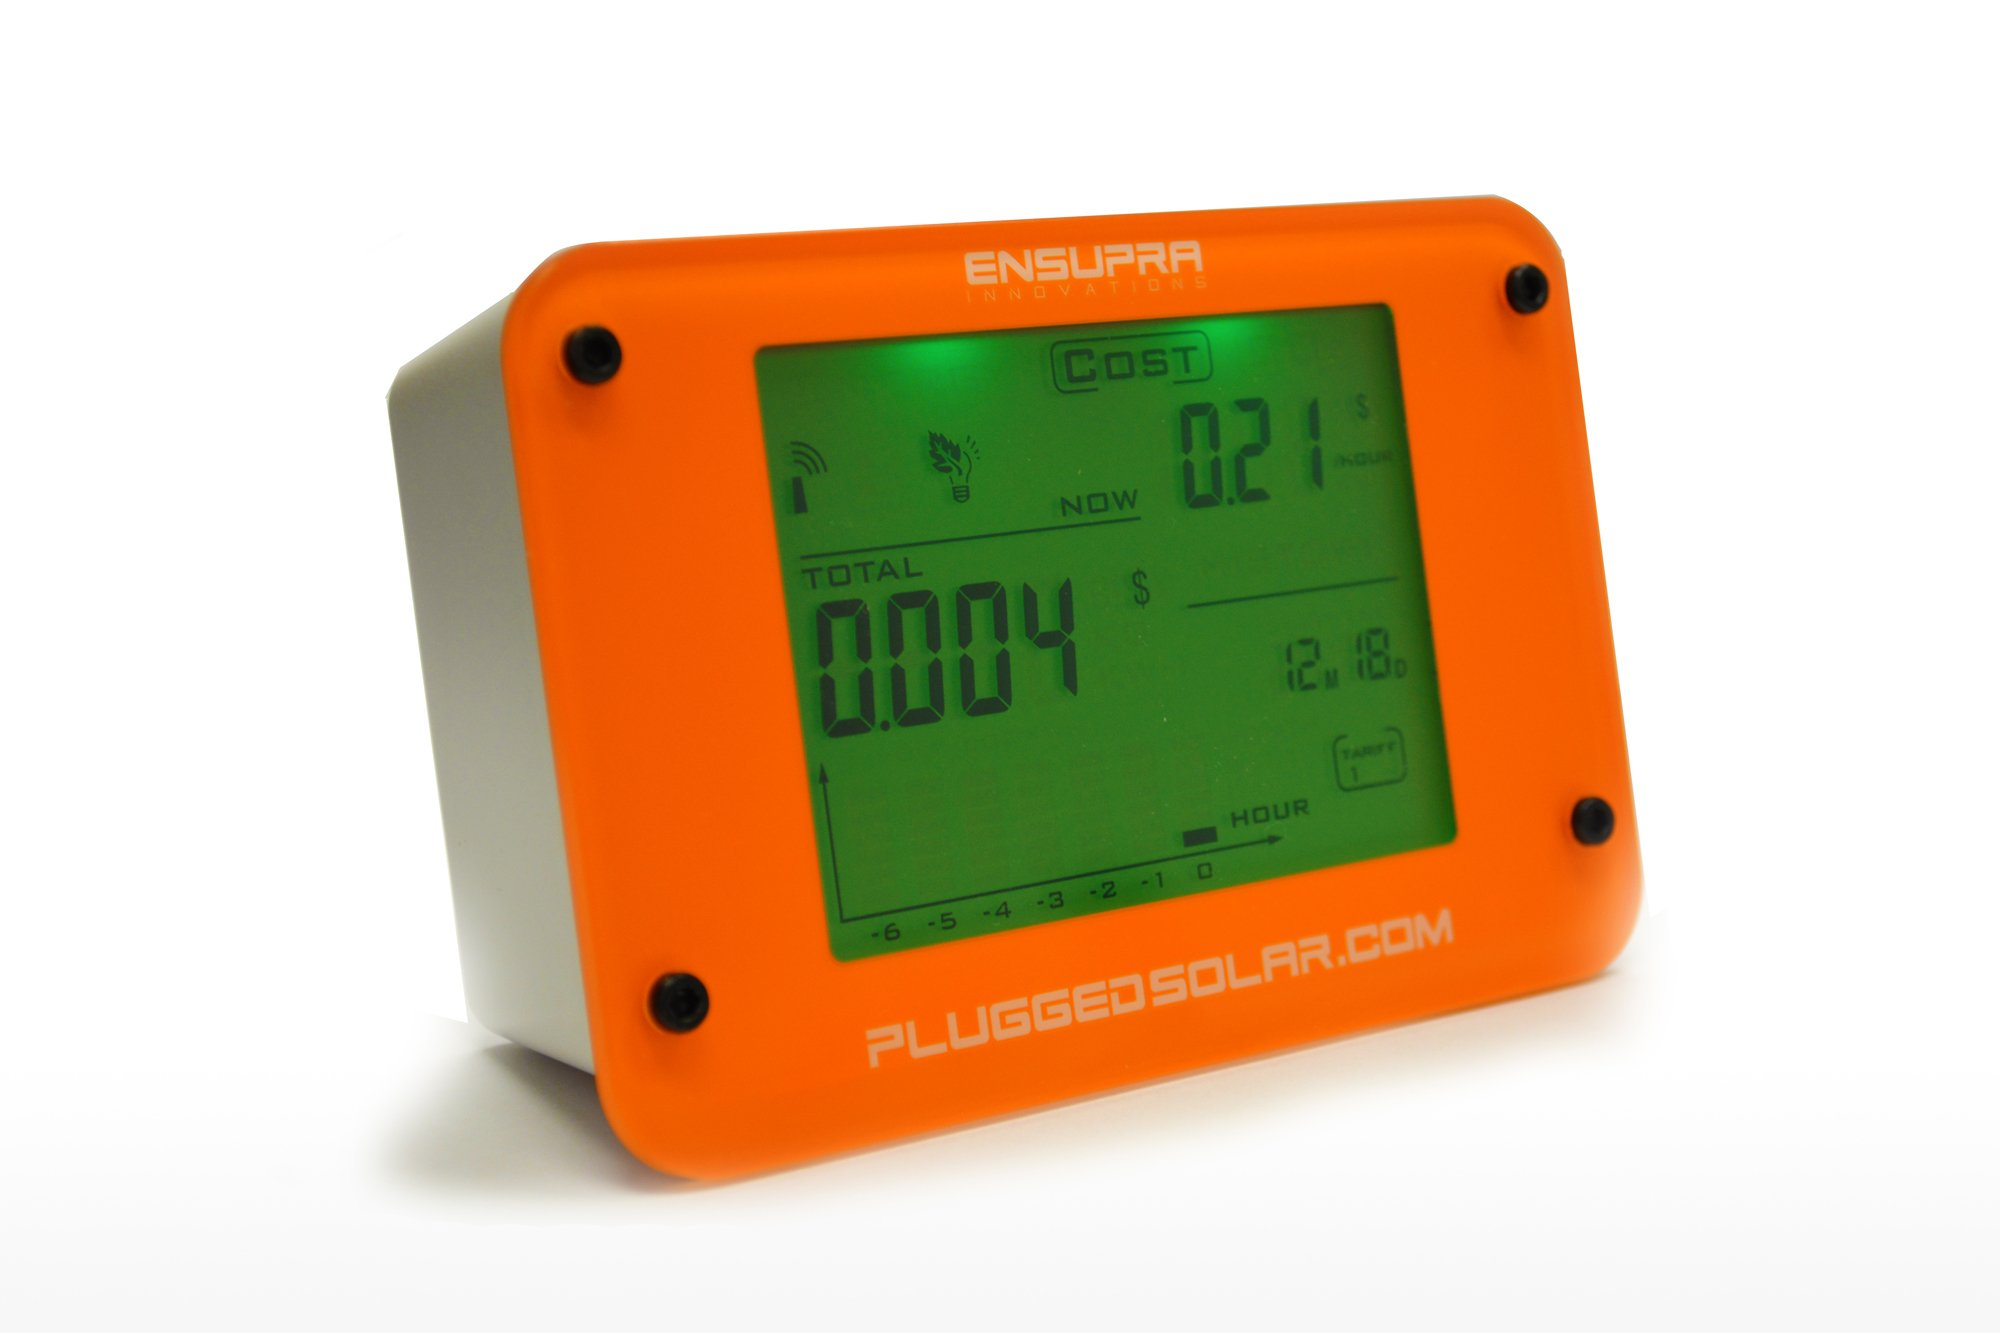 Wireless Solar Power Meter for Solar Power (AC), Monitor Displays Live KW (Kilo-Watts of AC Power Generation), Records the Solar PV Electricity Prodtion in Kwh, Shows Money Savings and Co2 Avoiaded. Used also for Monitoring Electricity Generation from Win by Plugged Solar (Image #2)